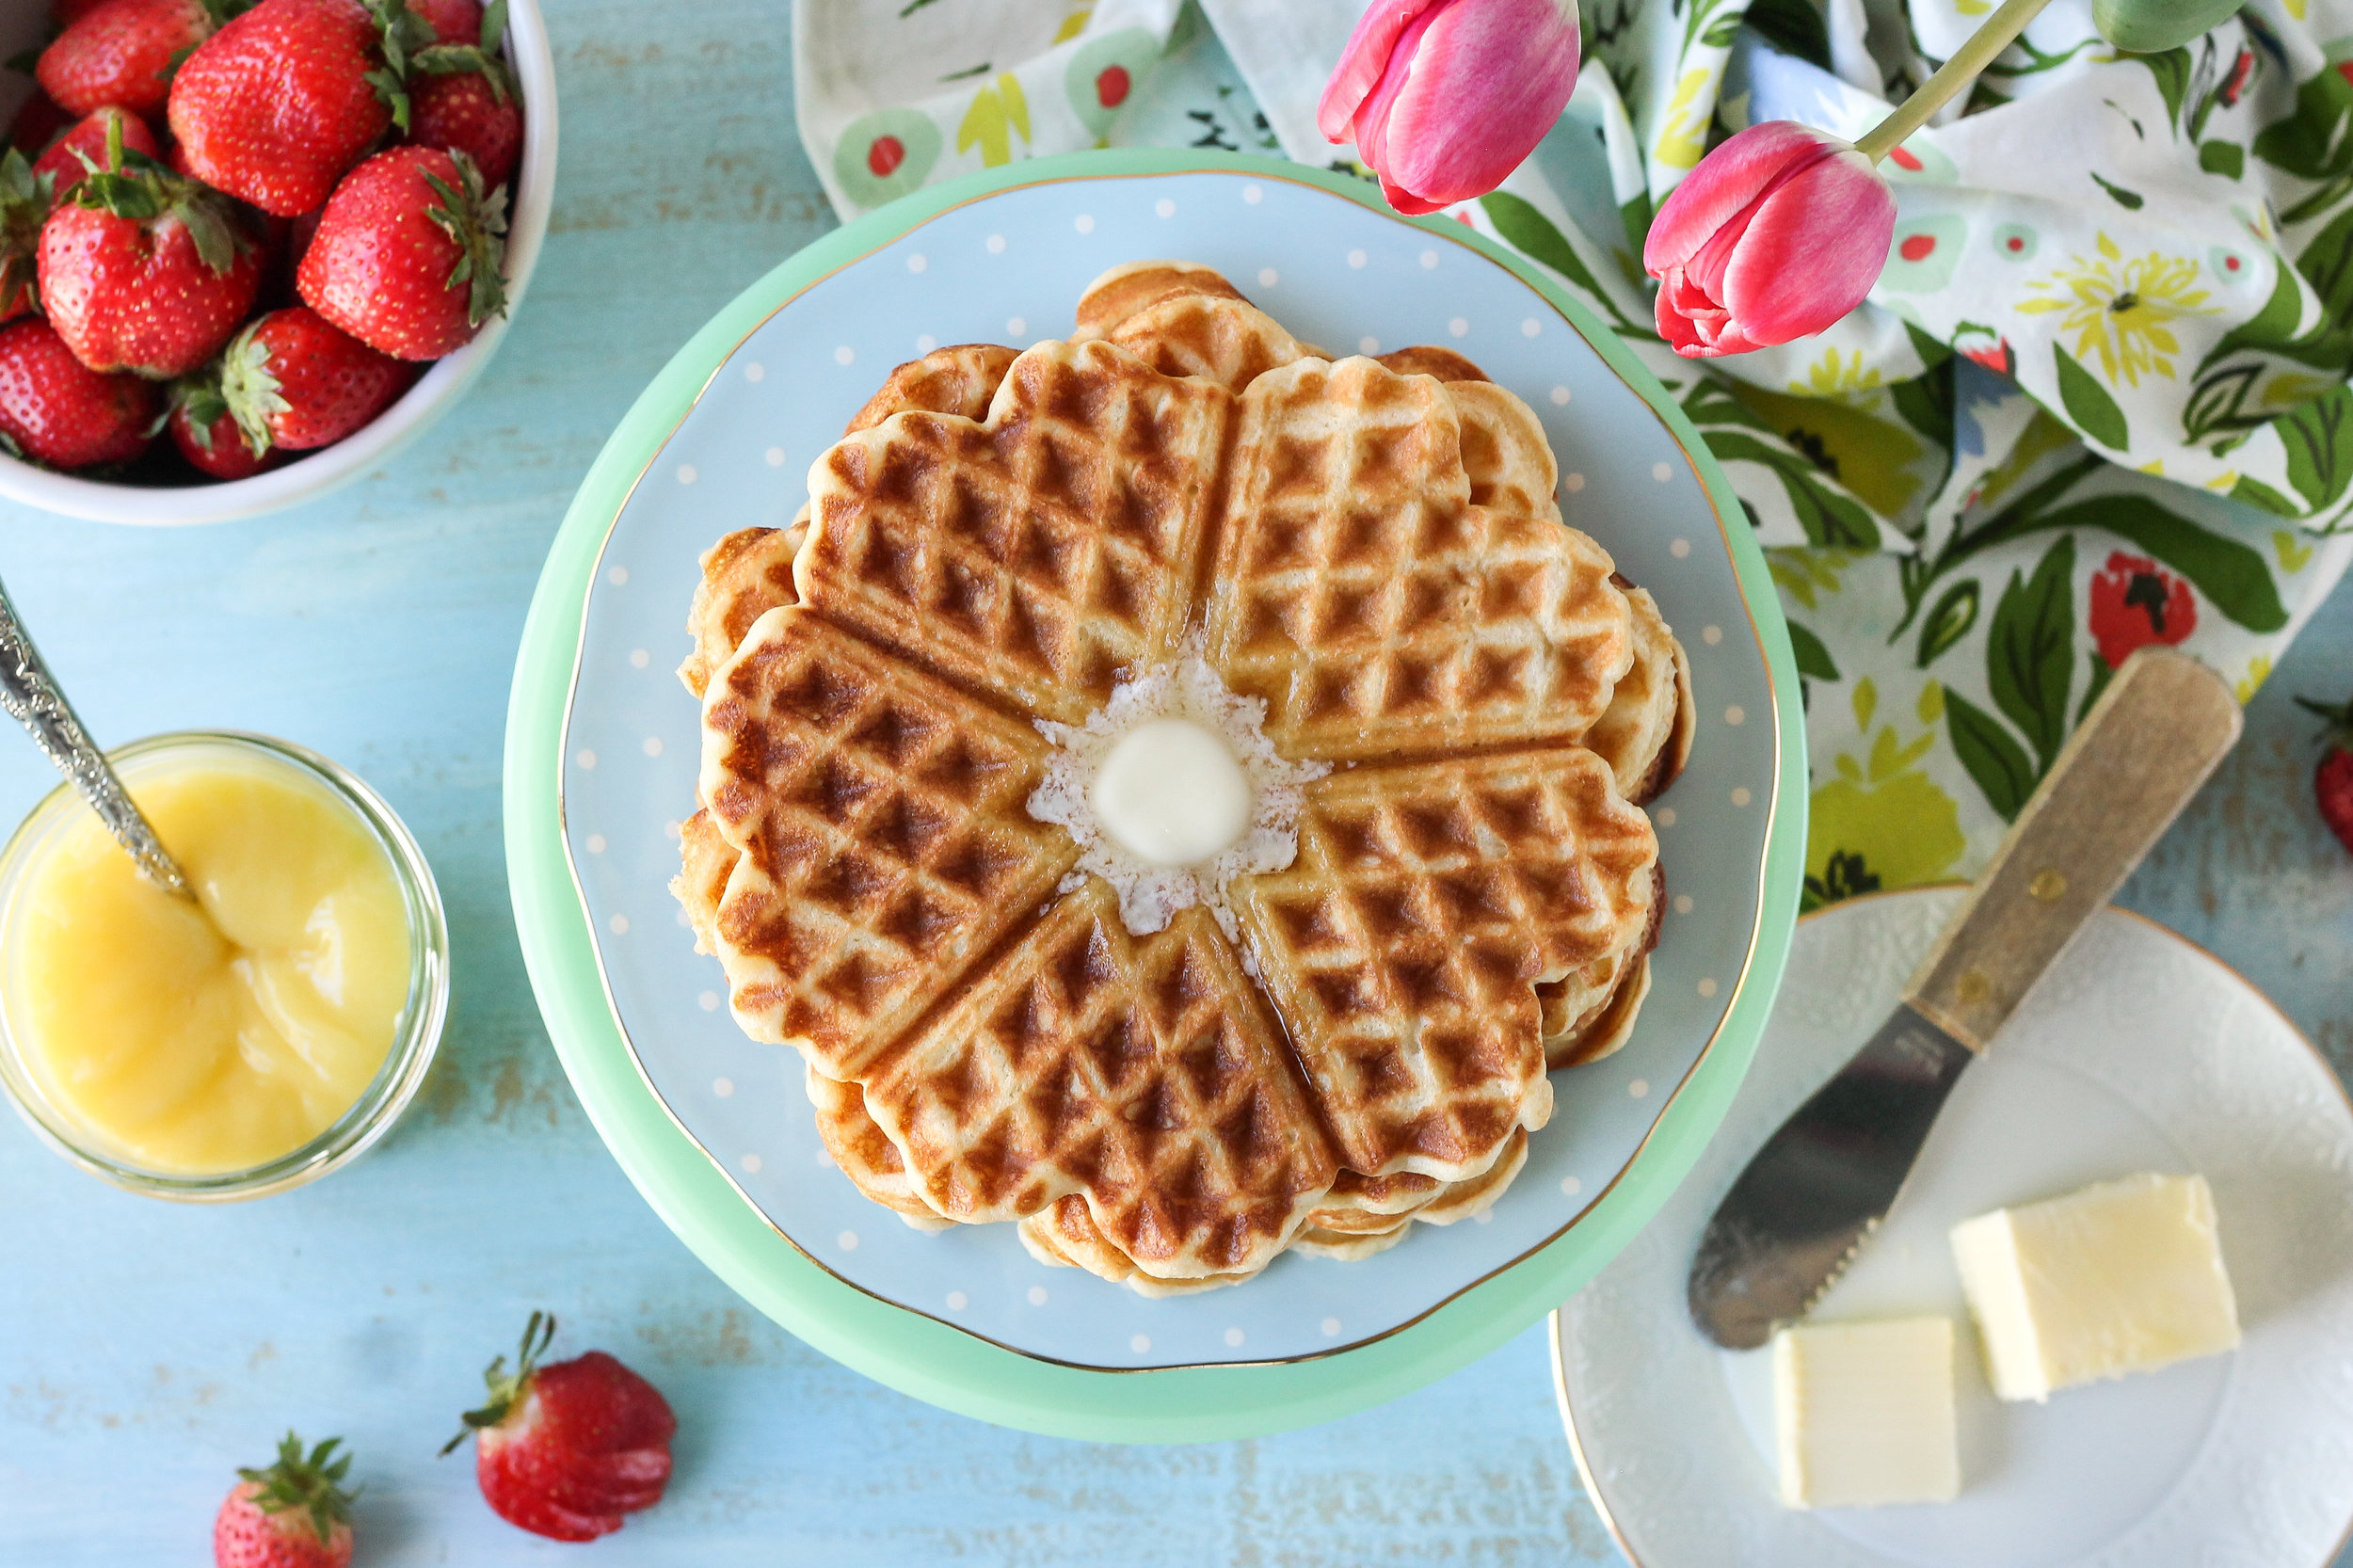 No syrup needed!!  Your new go-to waffle recipe for the perfect, everyday waffle!  Find the super simple recipe on WWW.PEDANTICFOODIE.COM!